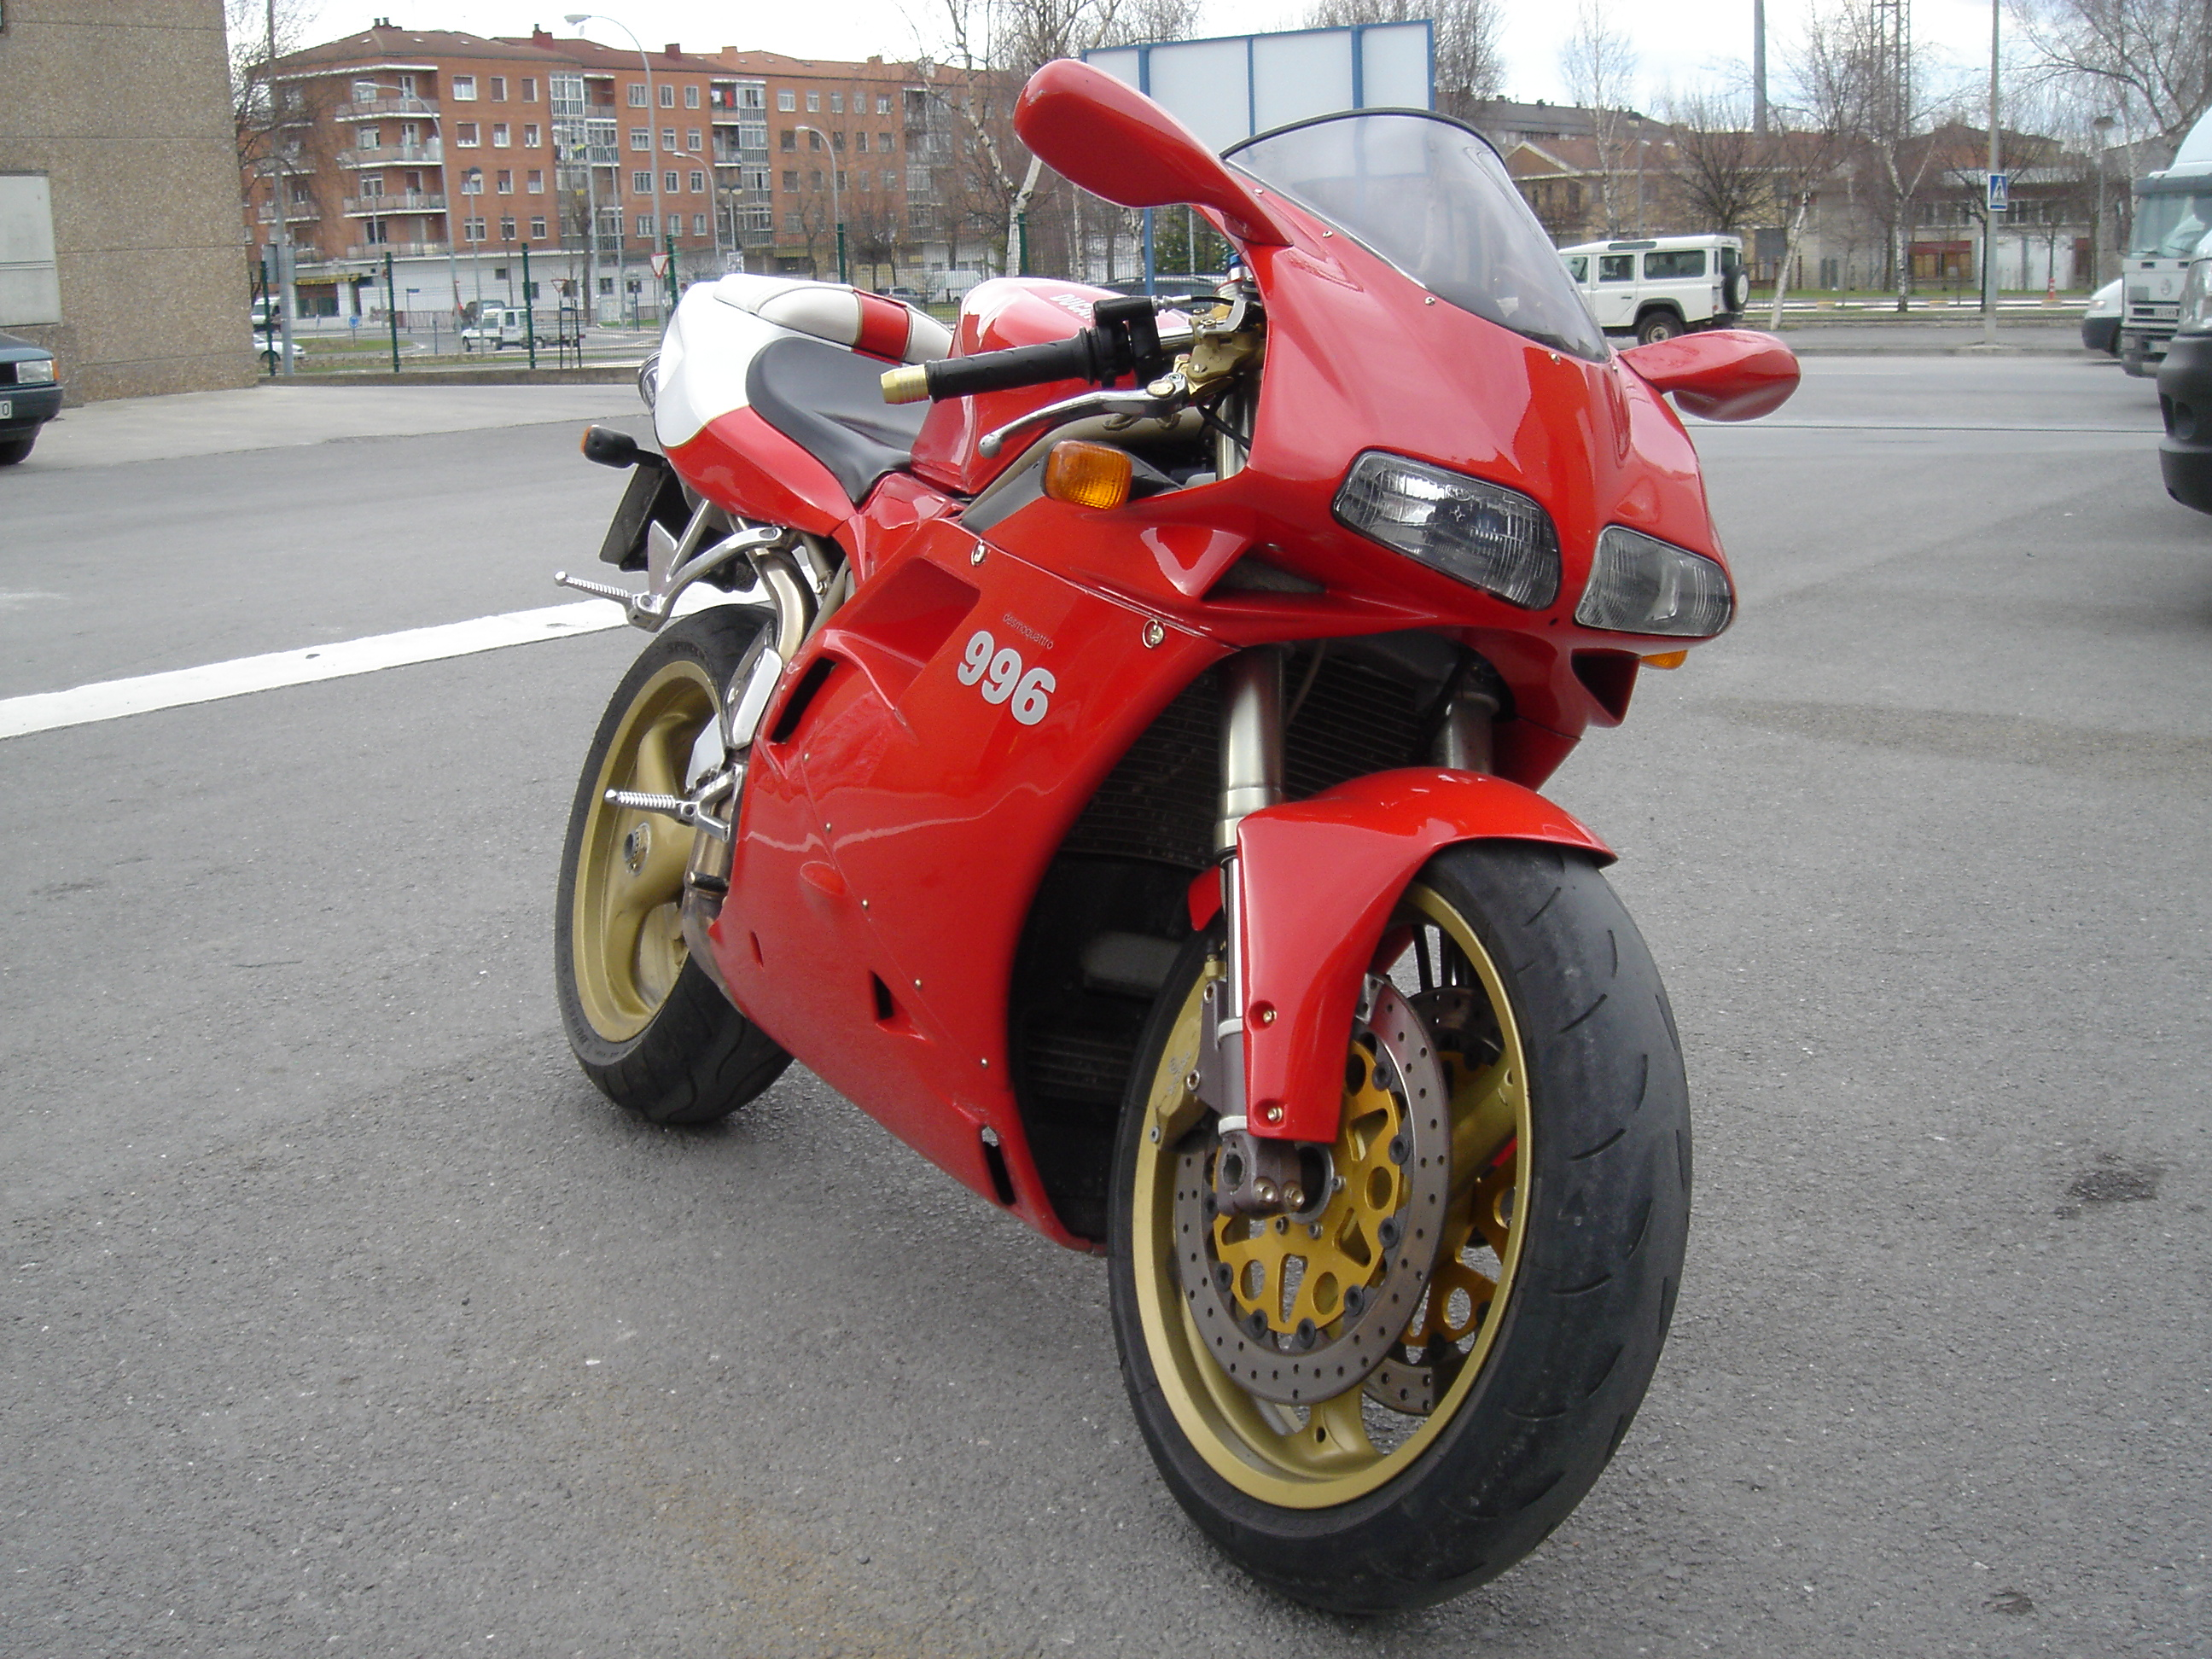 Ducati 996 R wallpapers #11048